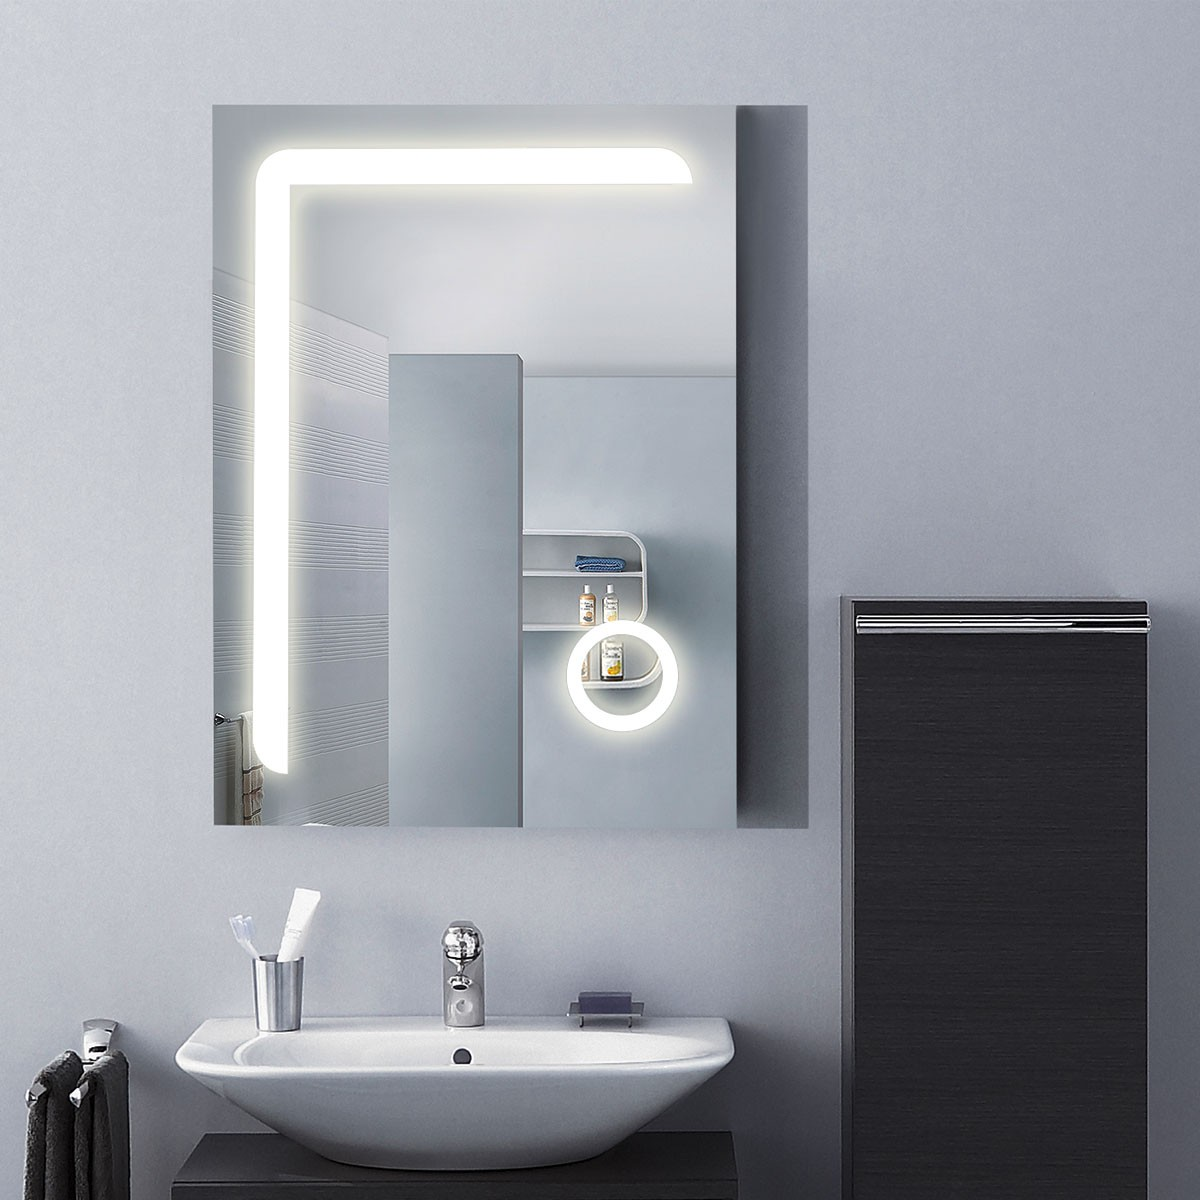 24 x 32 In LED Mirror with Circular Magnifier, ON/OFF Switch (DK-OD-CL810)